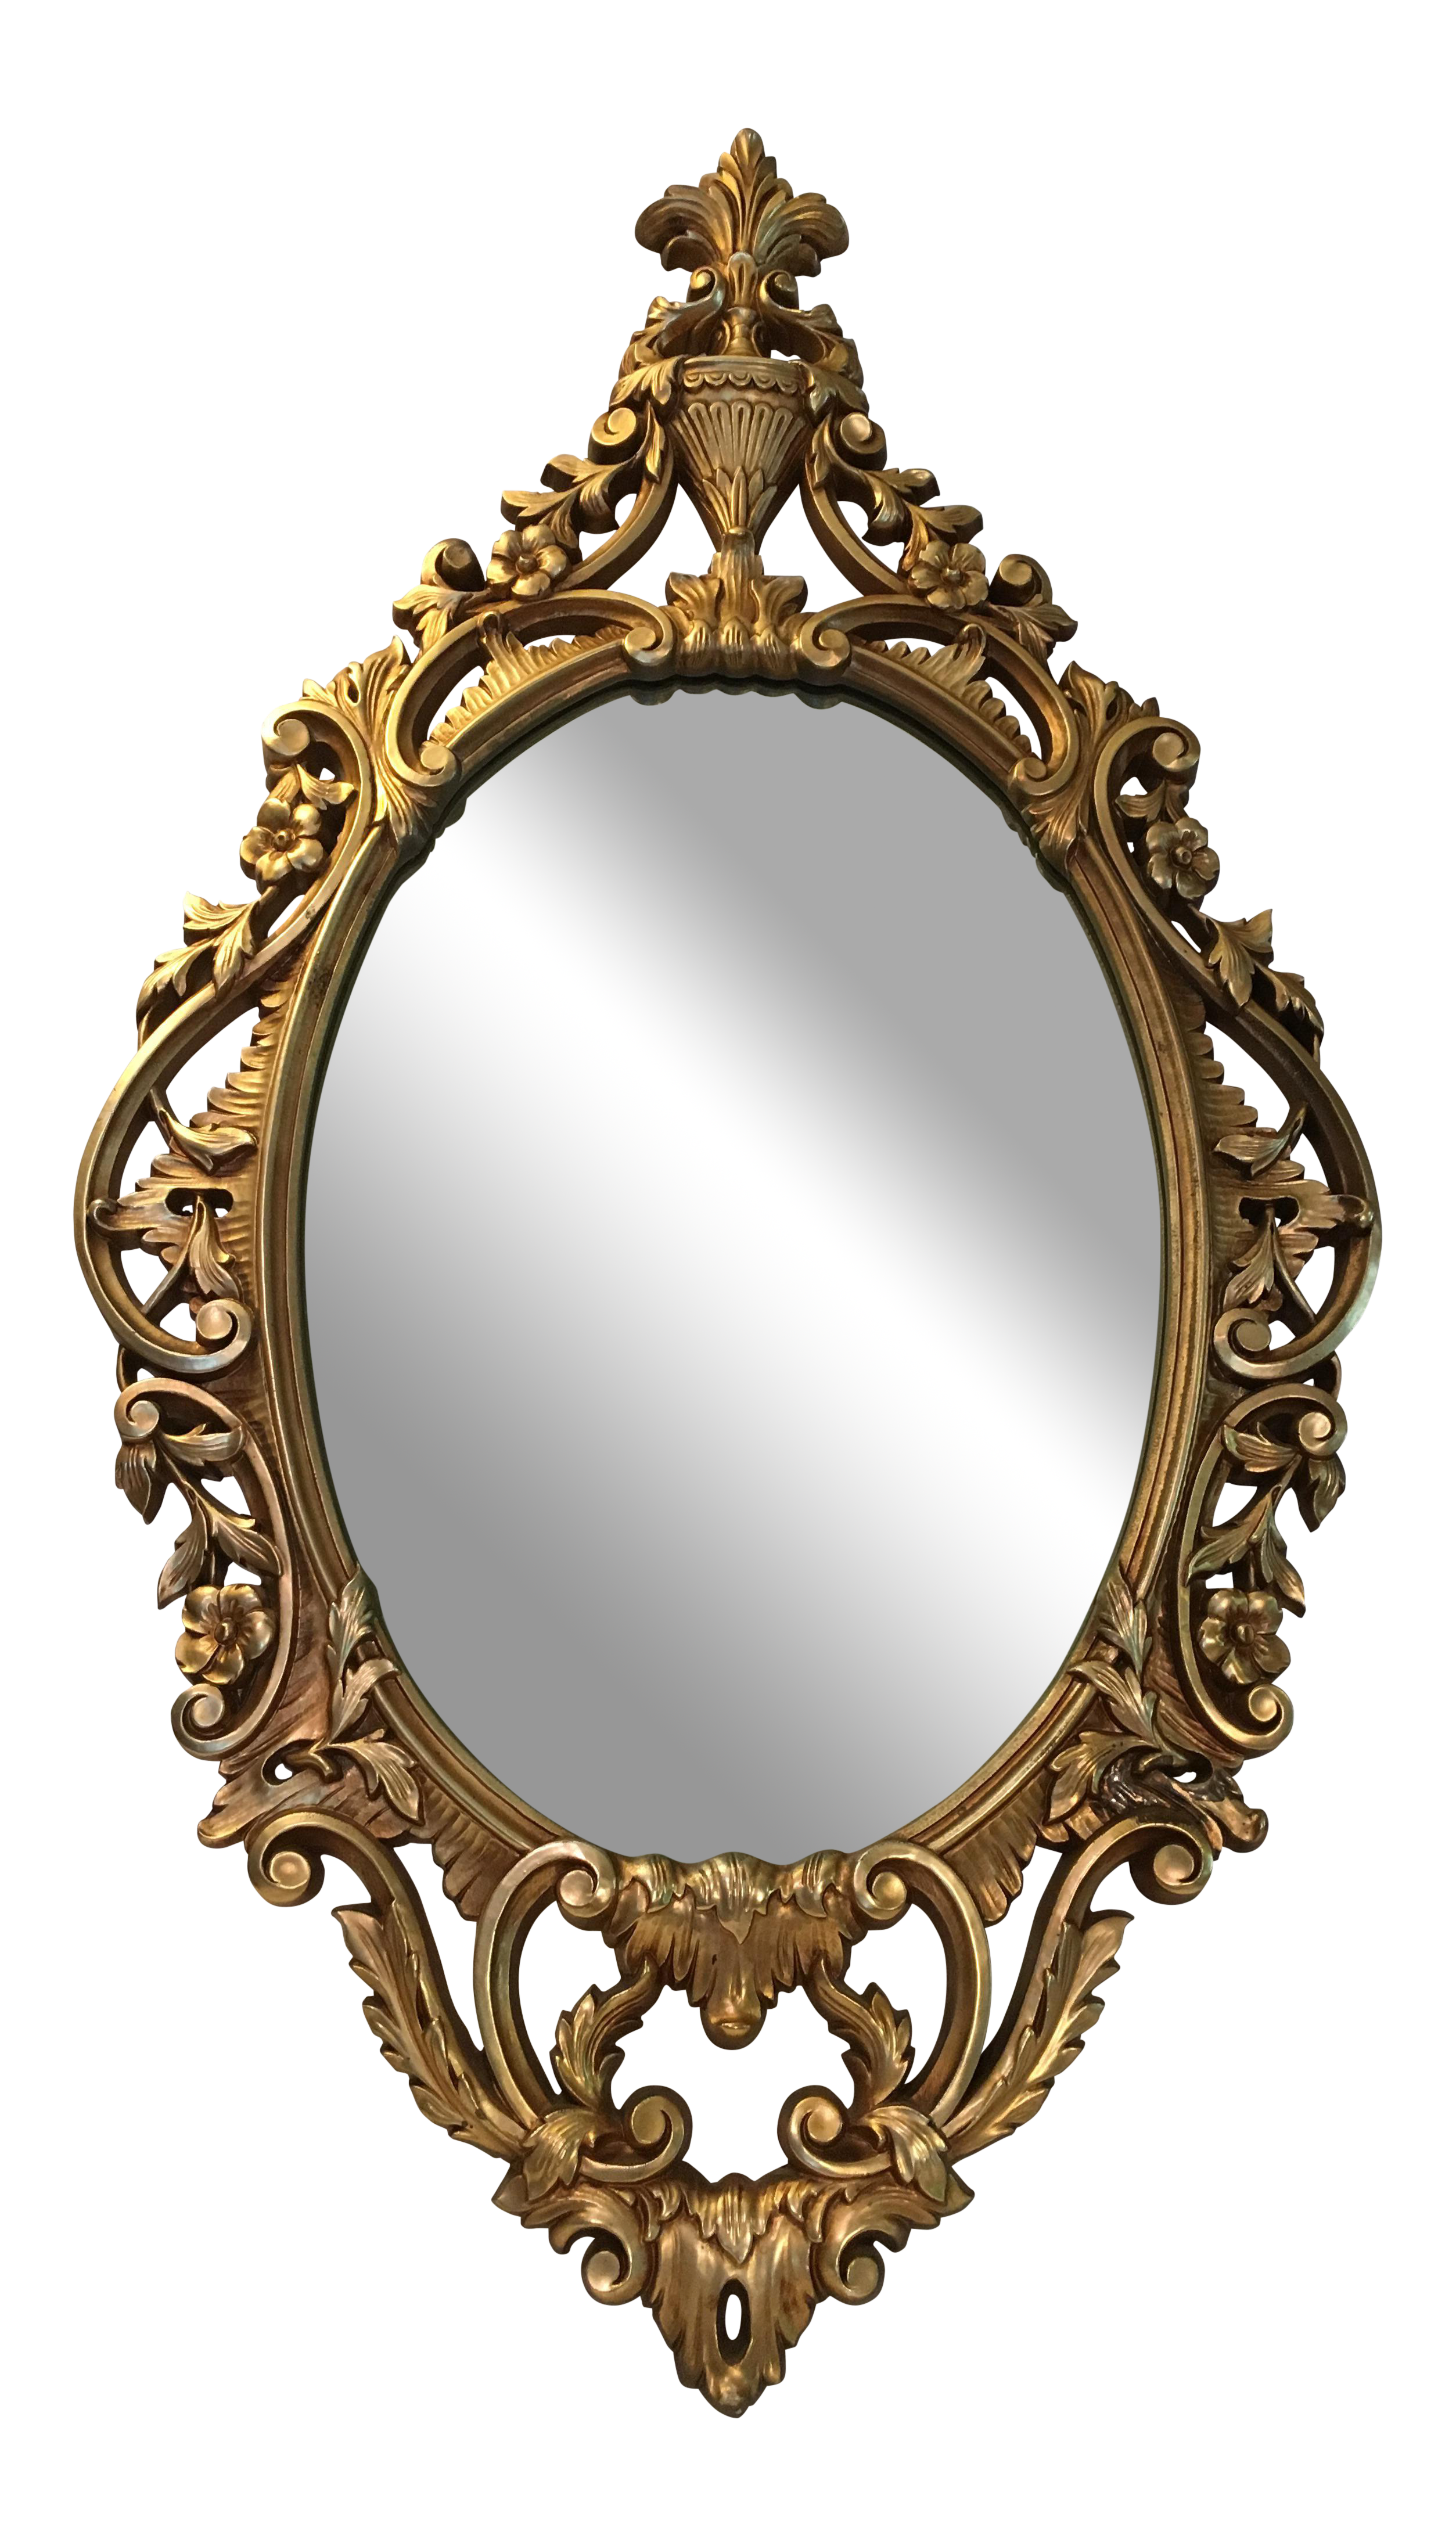 Vintage mirror png. Burwood products gold ornate